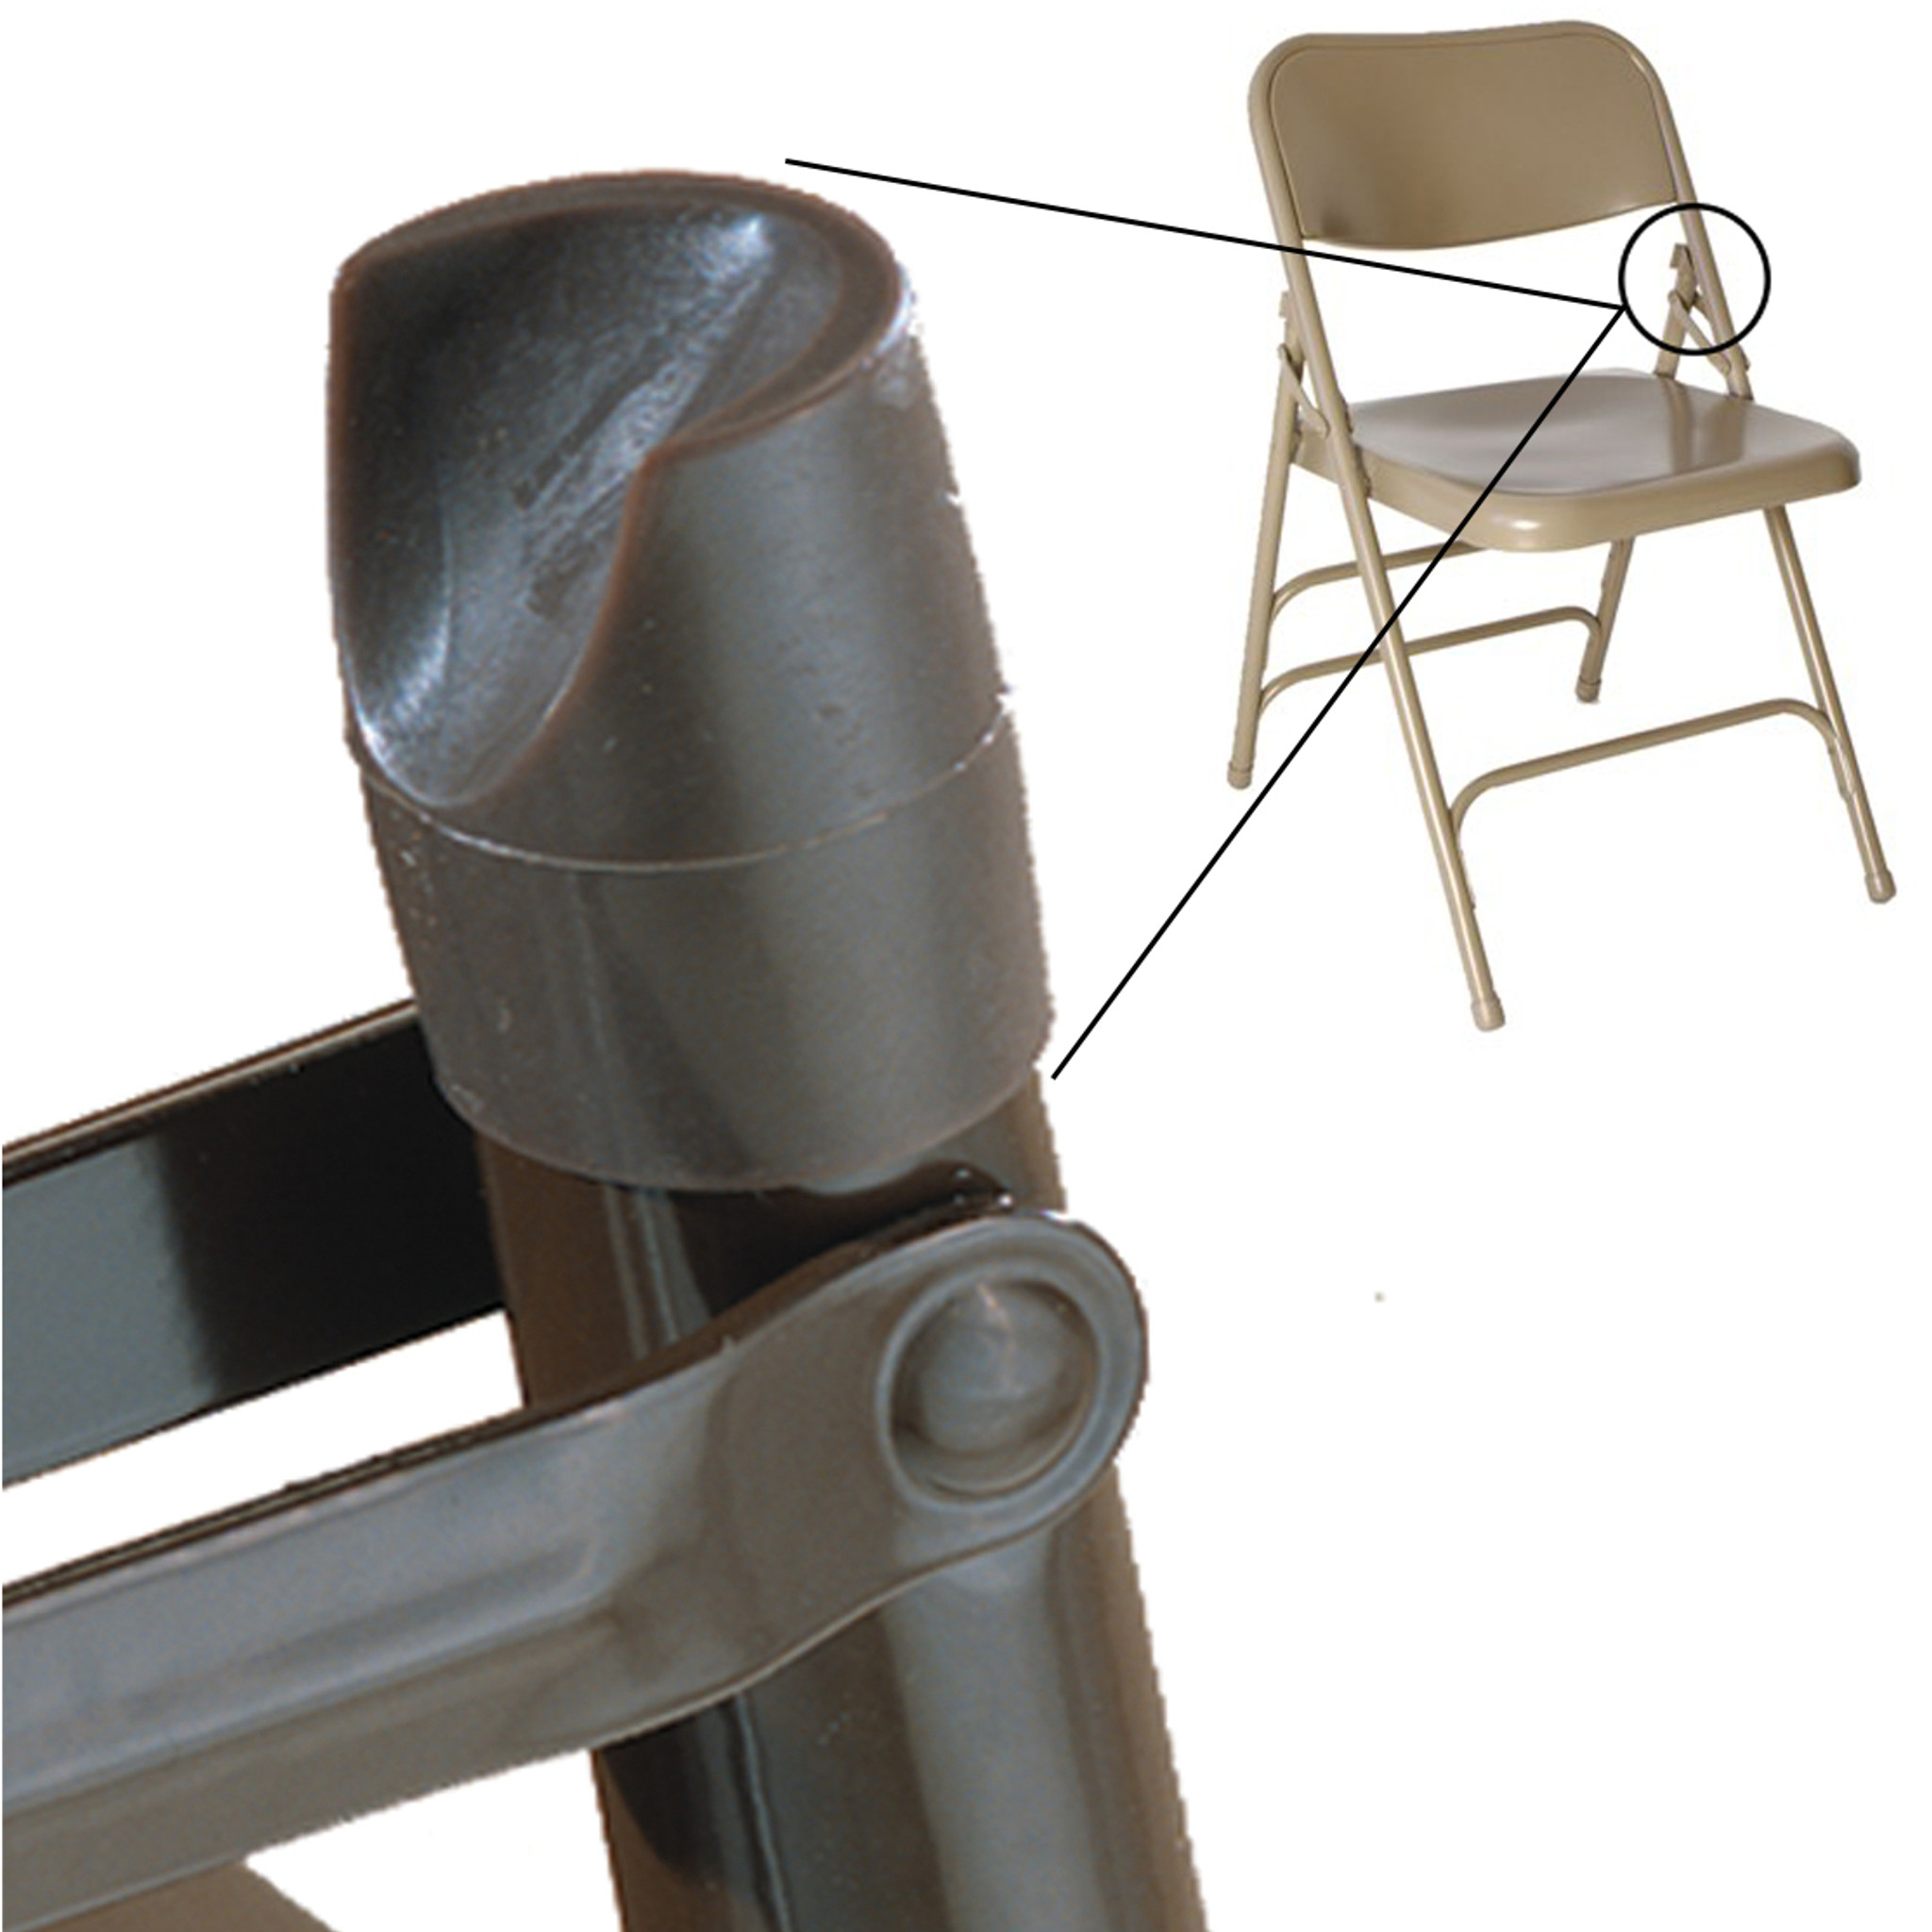 chair stoppers plastic shower with wheels and removable arms individual pieces stability caps for metal